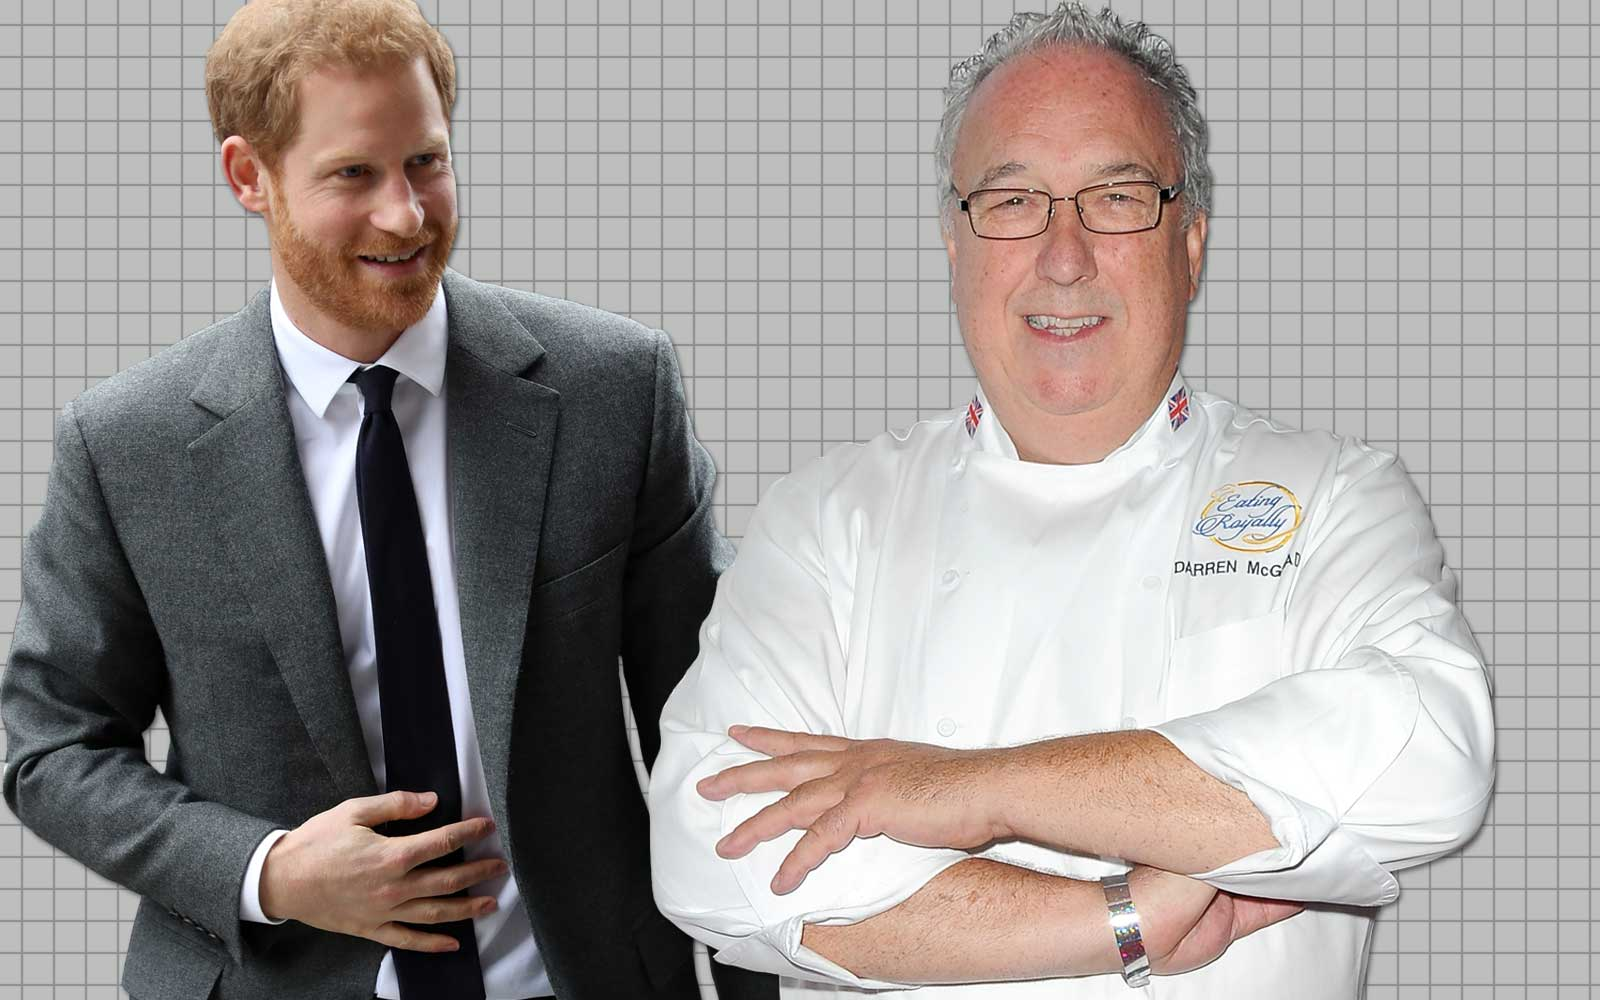 Prince Harry and Chef Darren McGrady